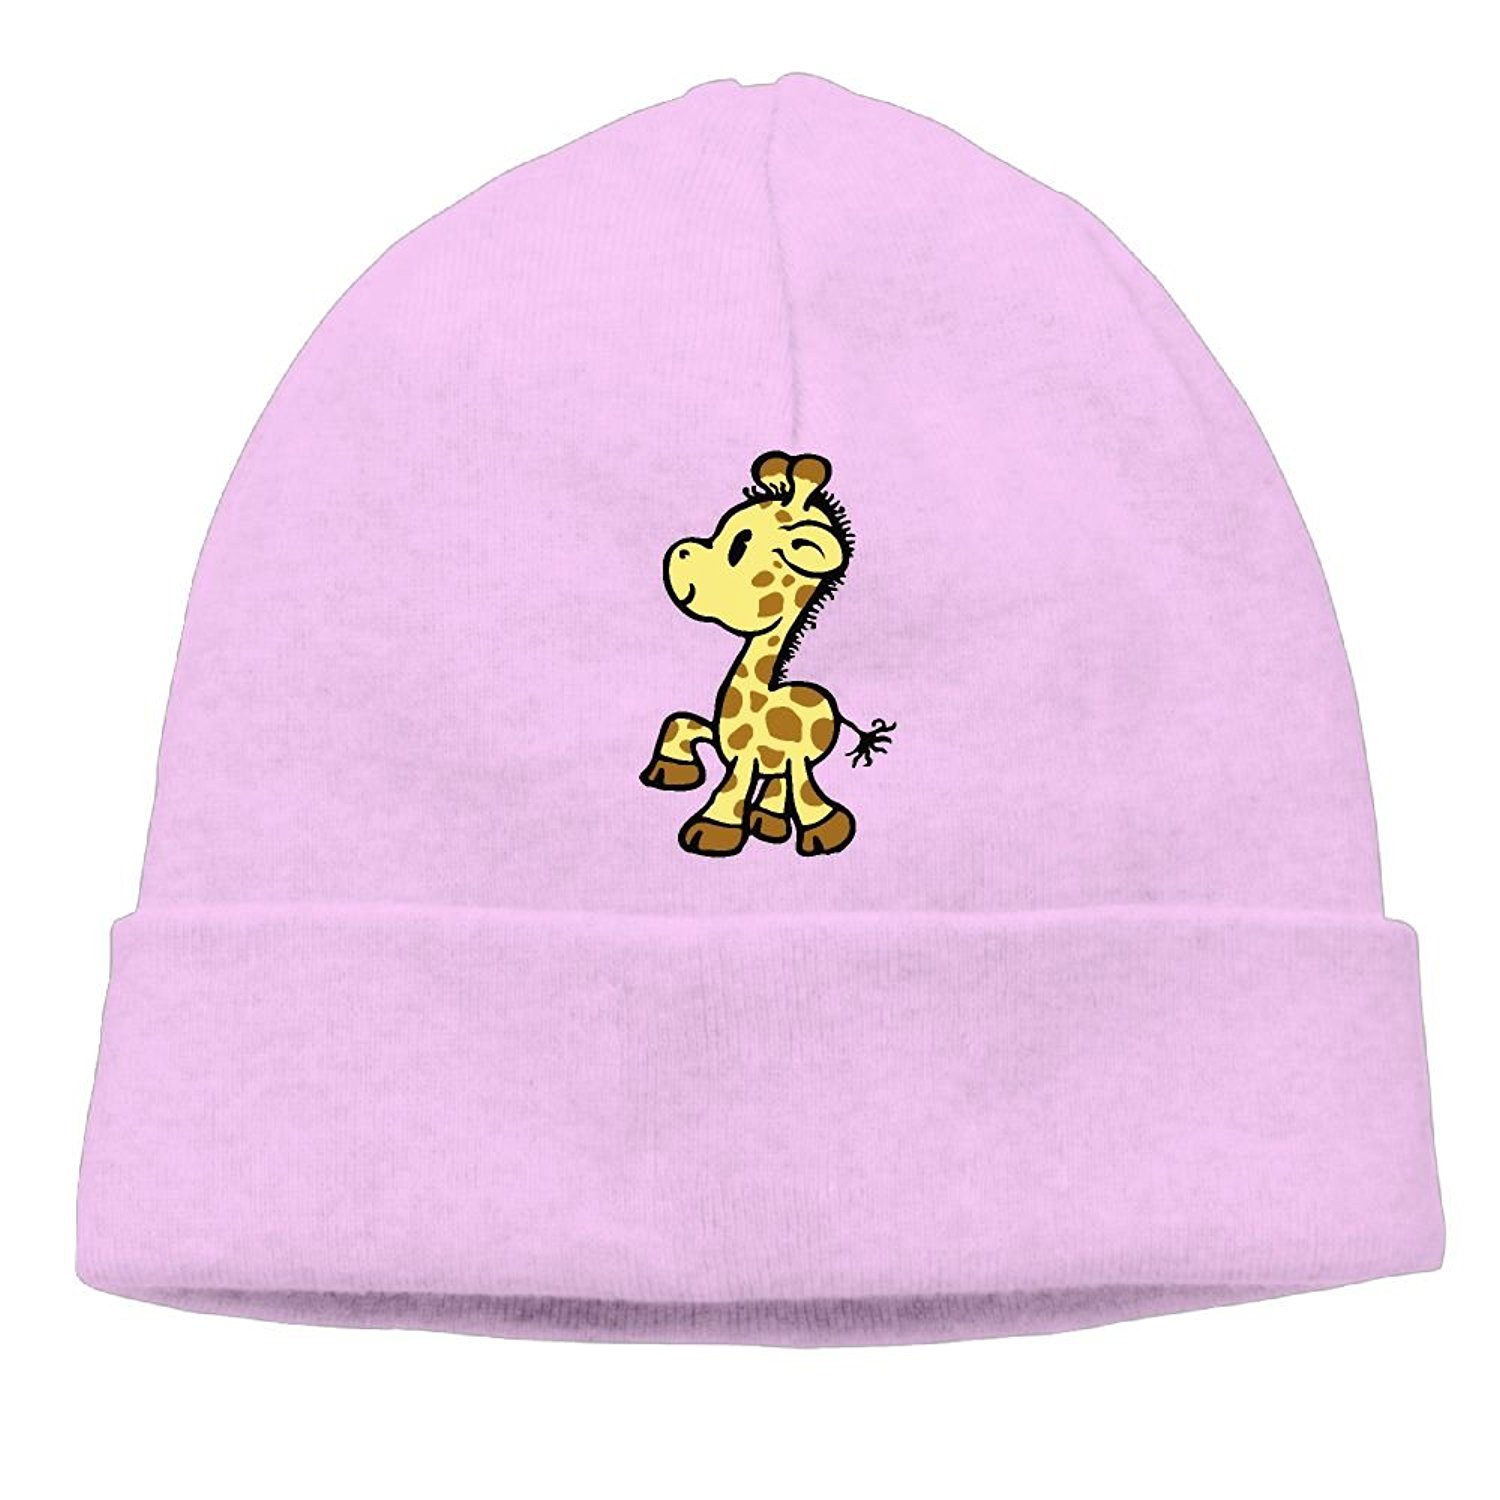 77fbaaa2e4803 Get Quotations · KKalobnm Baby Giraffe Men s Women s Beanie Hat Winter Warm  Daily Hat